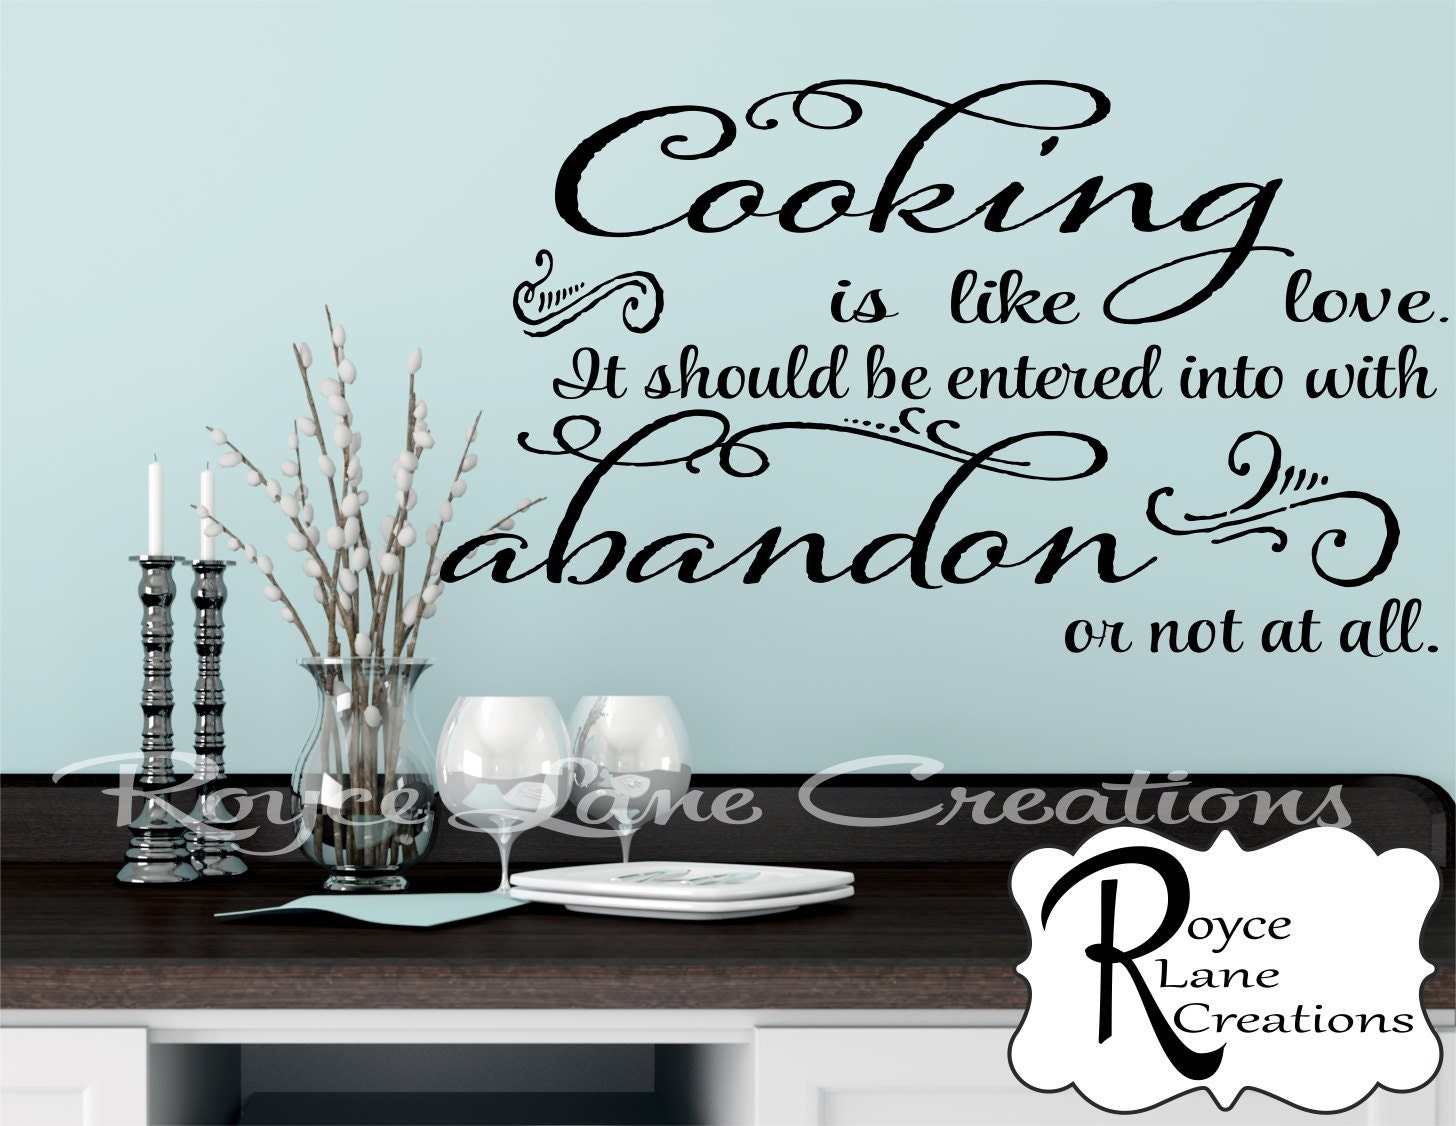 Kitchen Wall Decal  Cooking Is Like Love Kitchen Quote Decal Kitchen Quote Wall  Decals  Kitchen Decor Kitchen Wall Decor Kitchen Wall Art